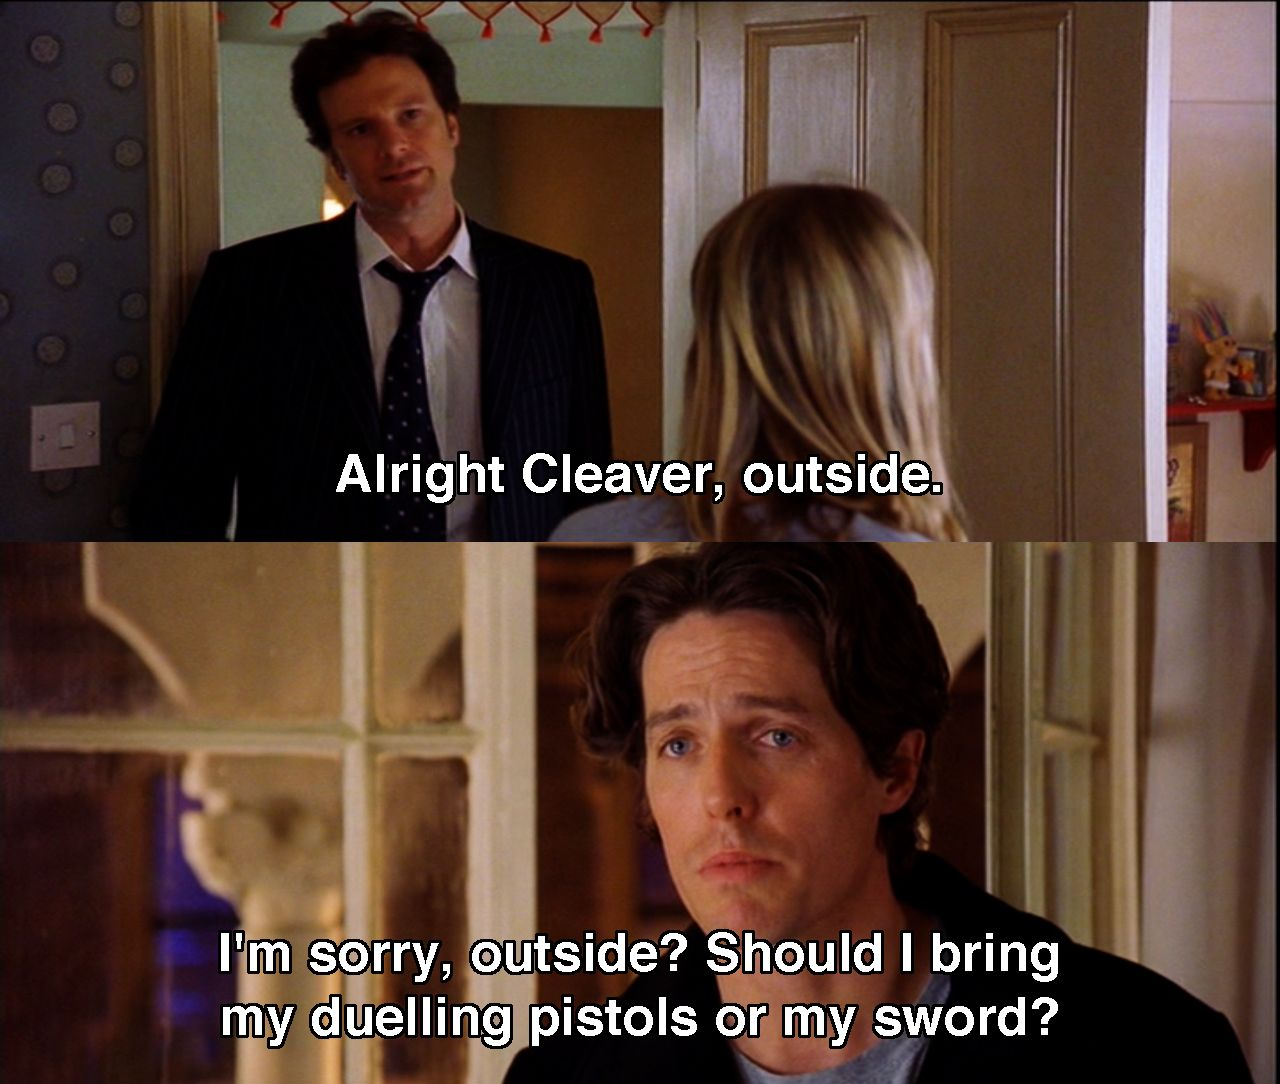 Alright Cleaver Outside Bridget Jones S Diary 2001 Movie Quotes Bridget Jones Movies Bridget Jones Diary Bridget Jones Quotes